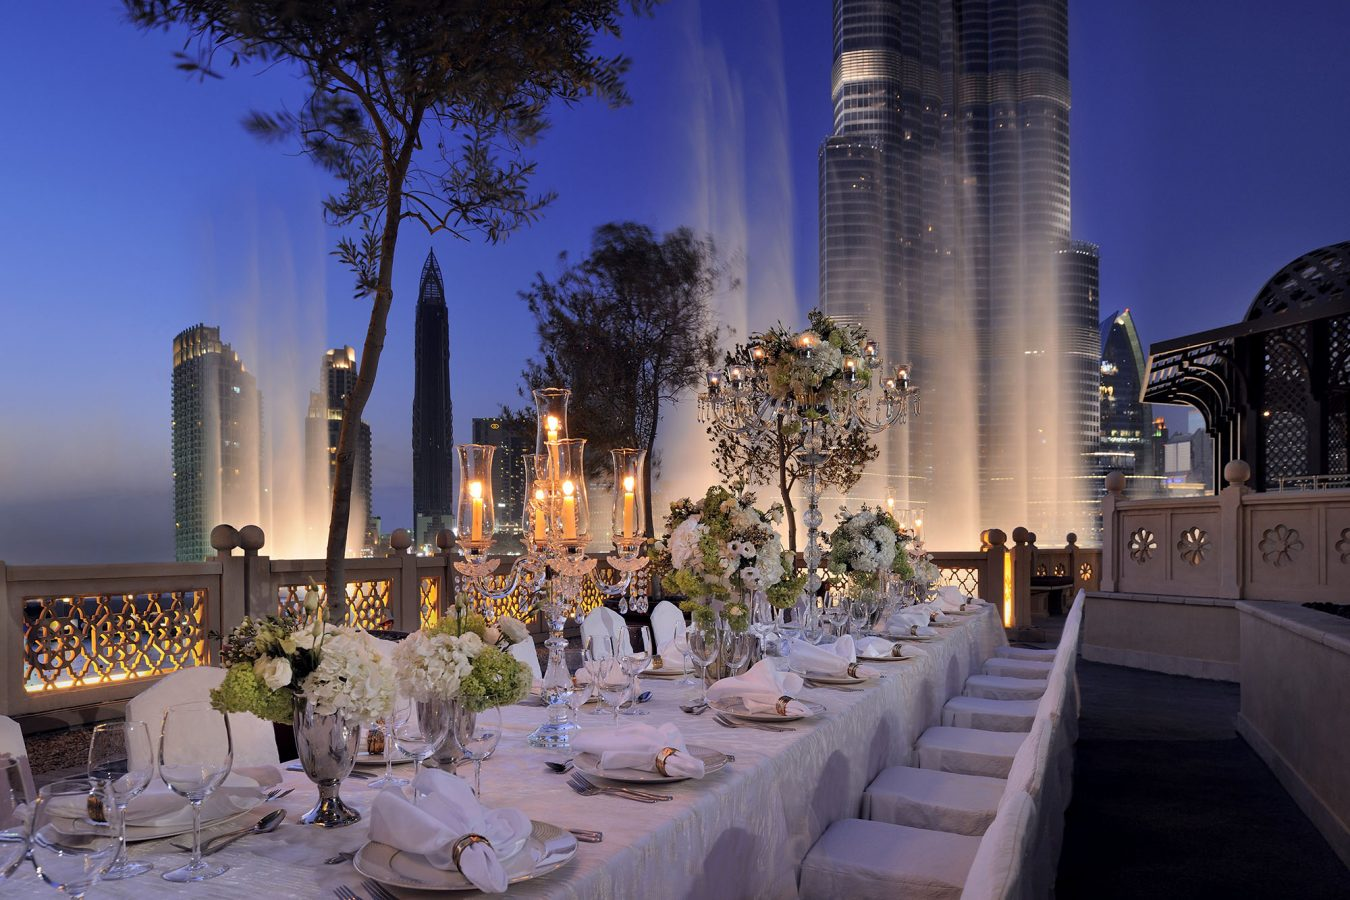 Wedding reception in front of Dubai Fountains